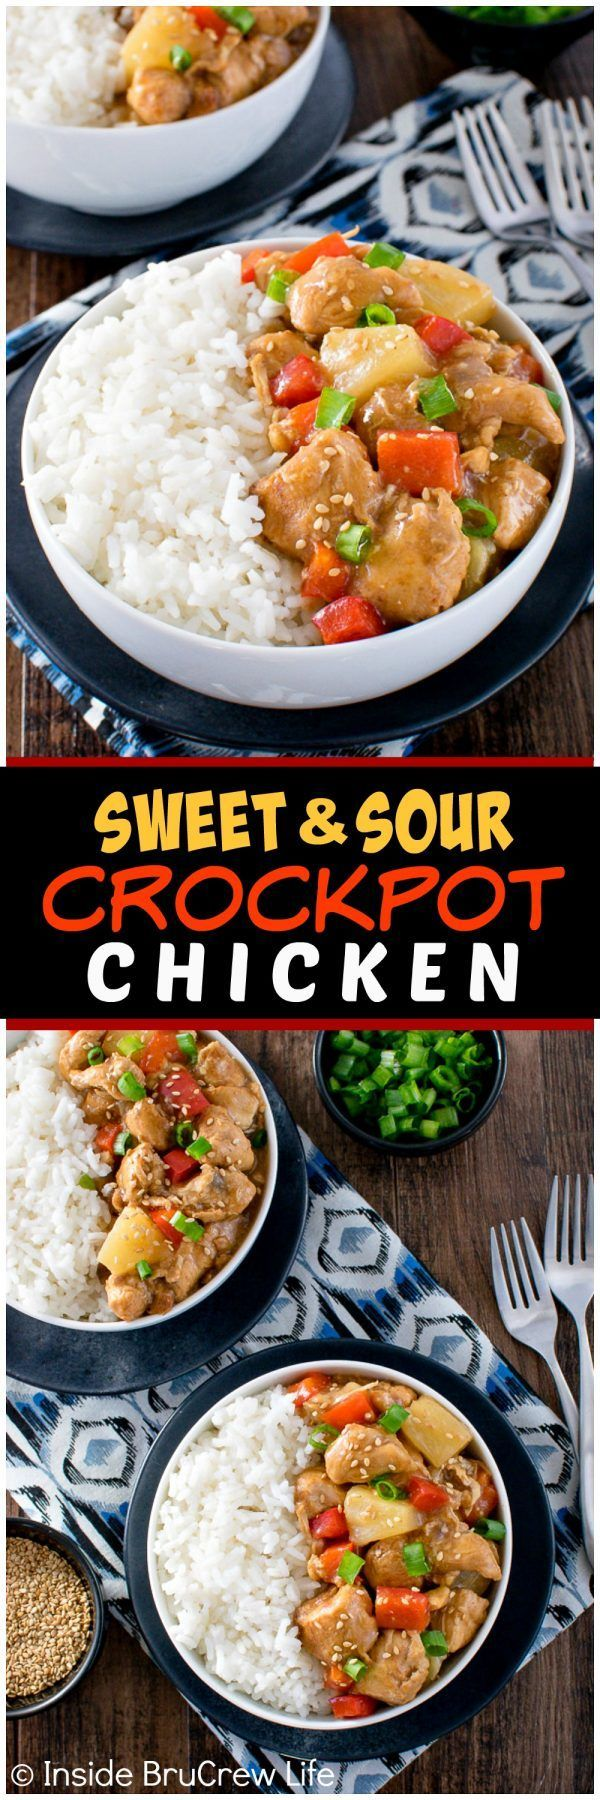 Sweet and Sour Crockpot Chicken - peppers, pineapple, and chicken cooked in a sweet & sour sauce tastes great over rice. Easy dinner recipe!